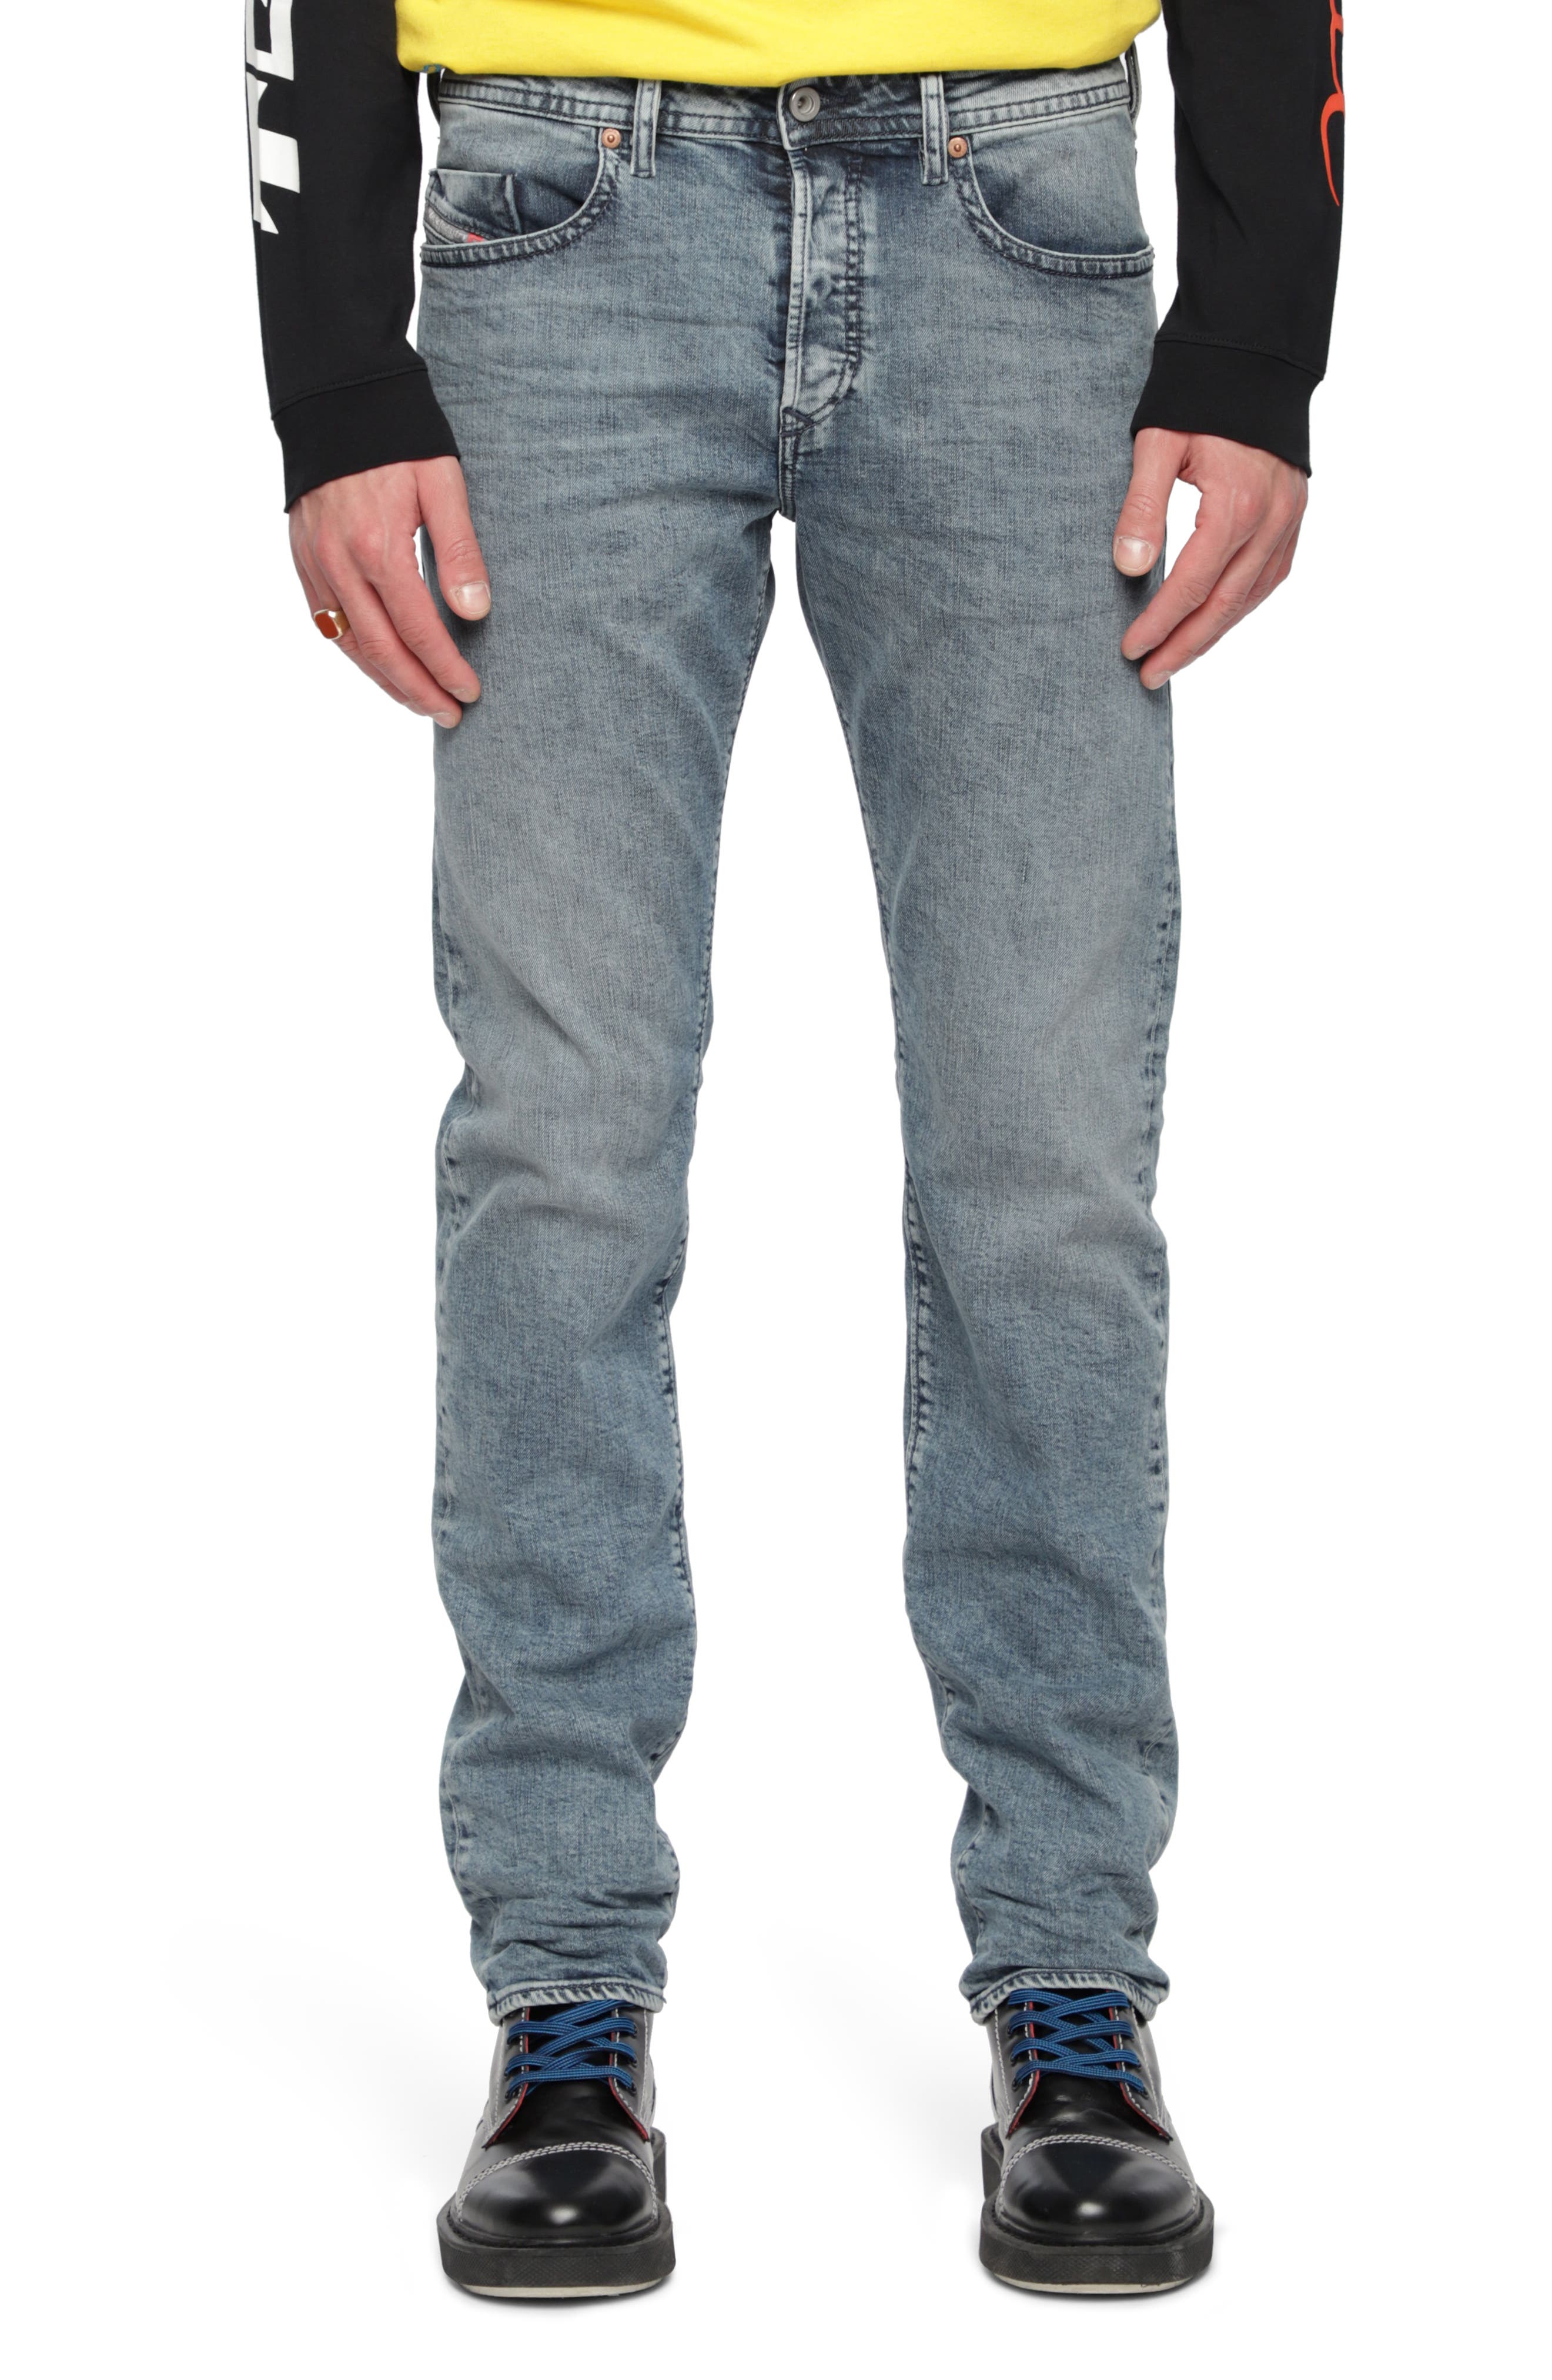 Buster Slim Fit Straight Leg Jeans,                         Main,                         color, 084Ux